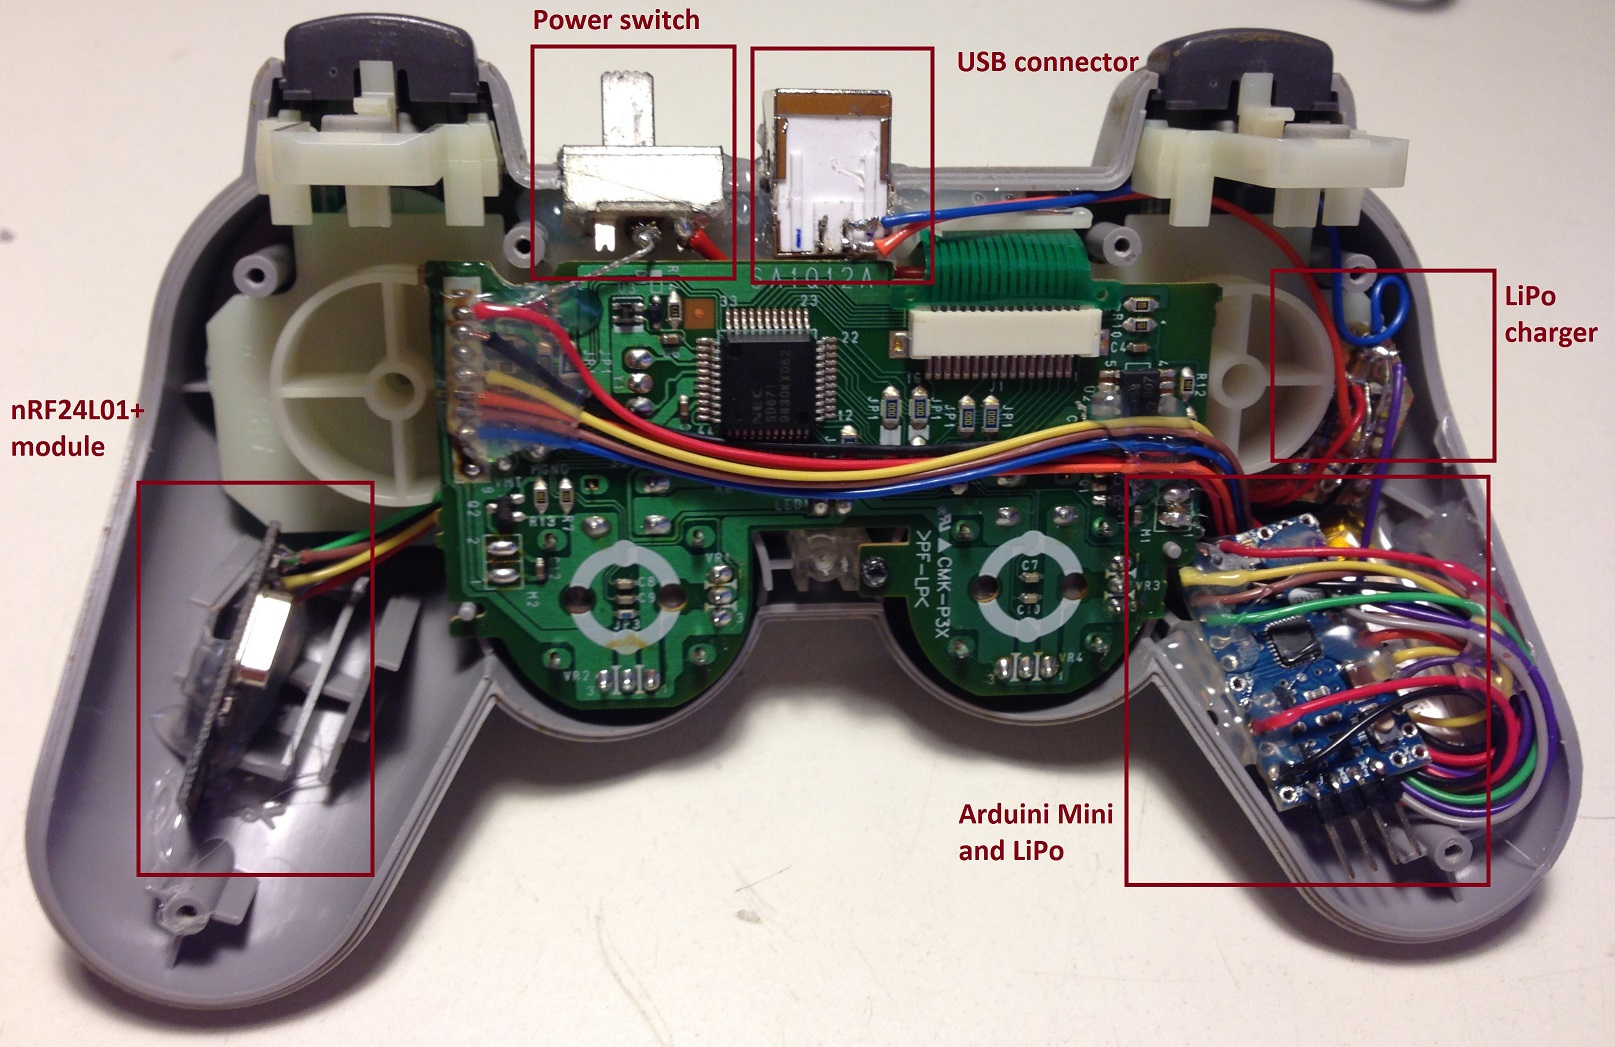 playstation controller hack arduino mini and nrf24l01 psx controller internals explained